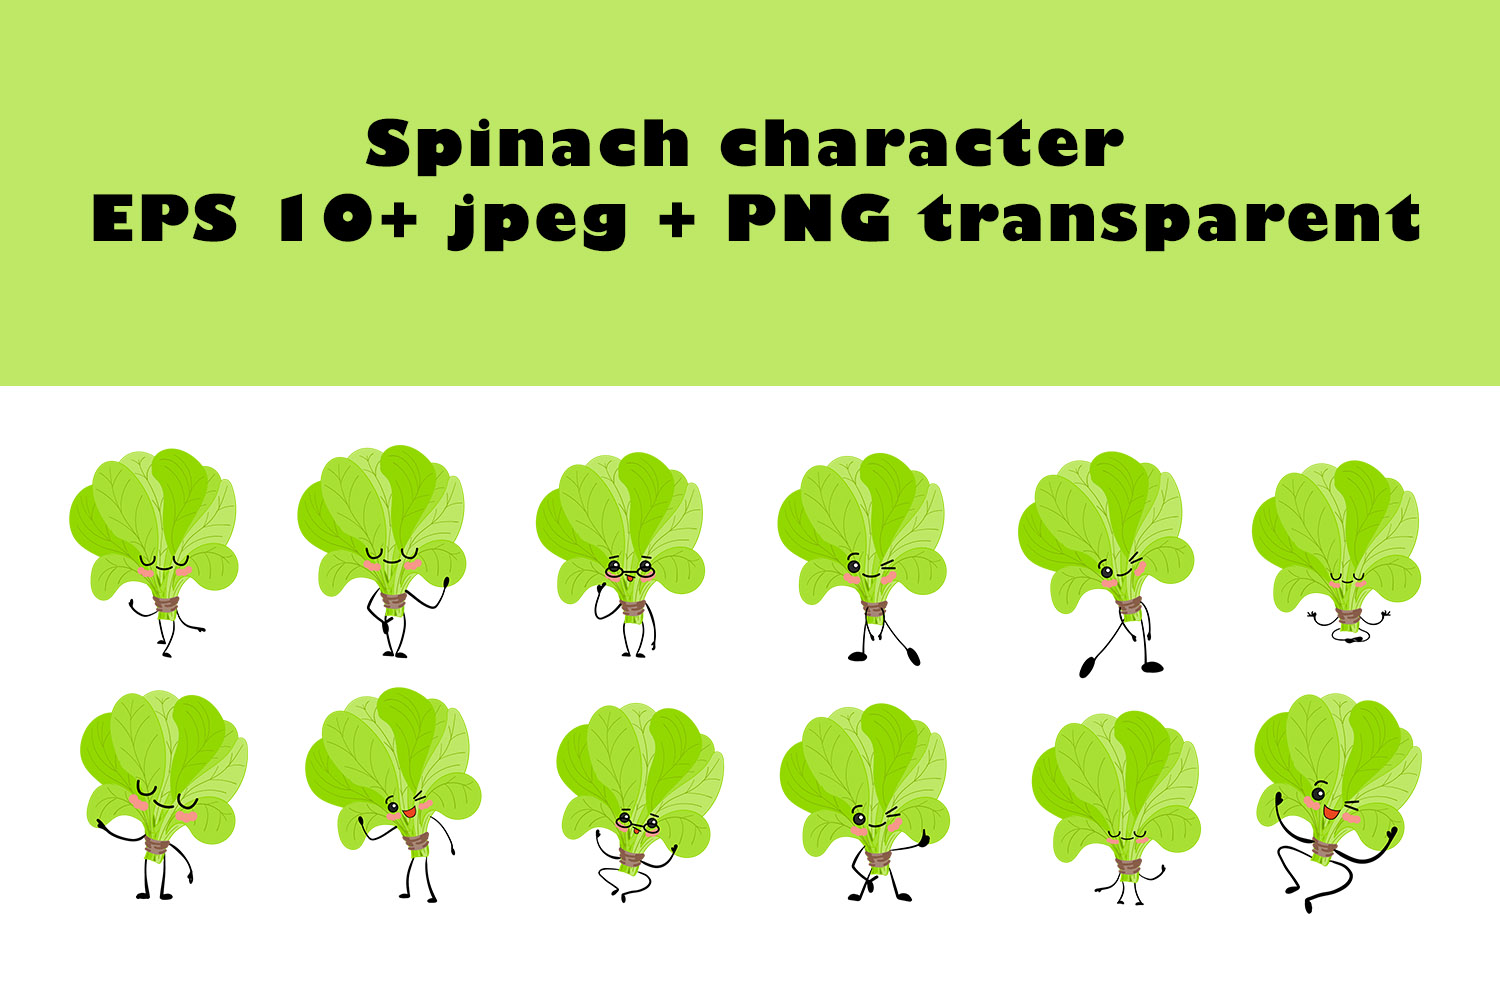 Spinach character EPS 10 jpeg PNG transparent. Healthy food. example image 1